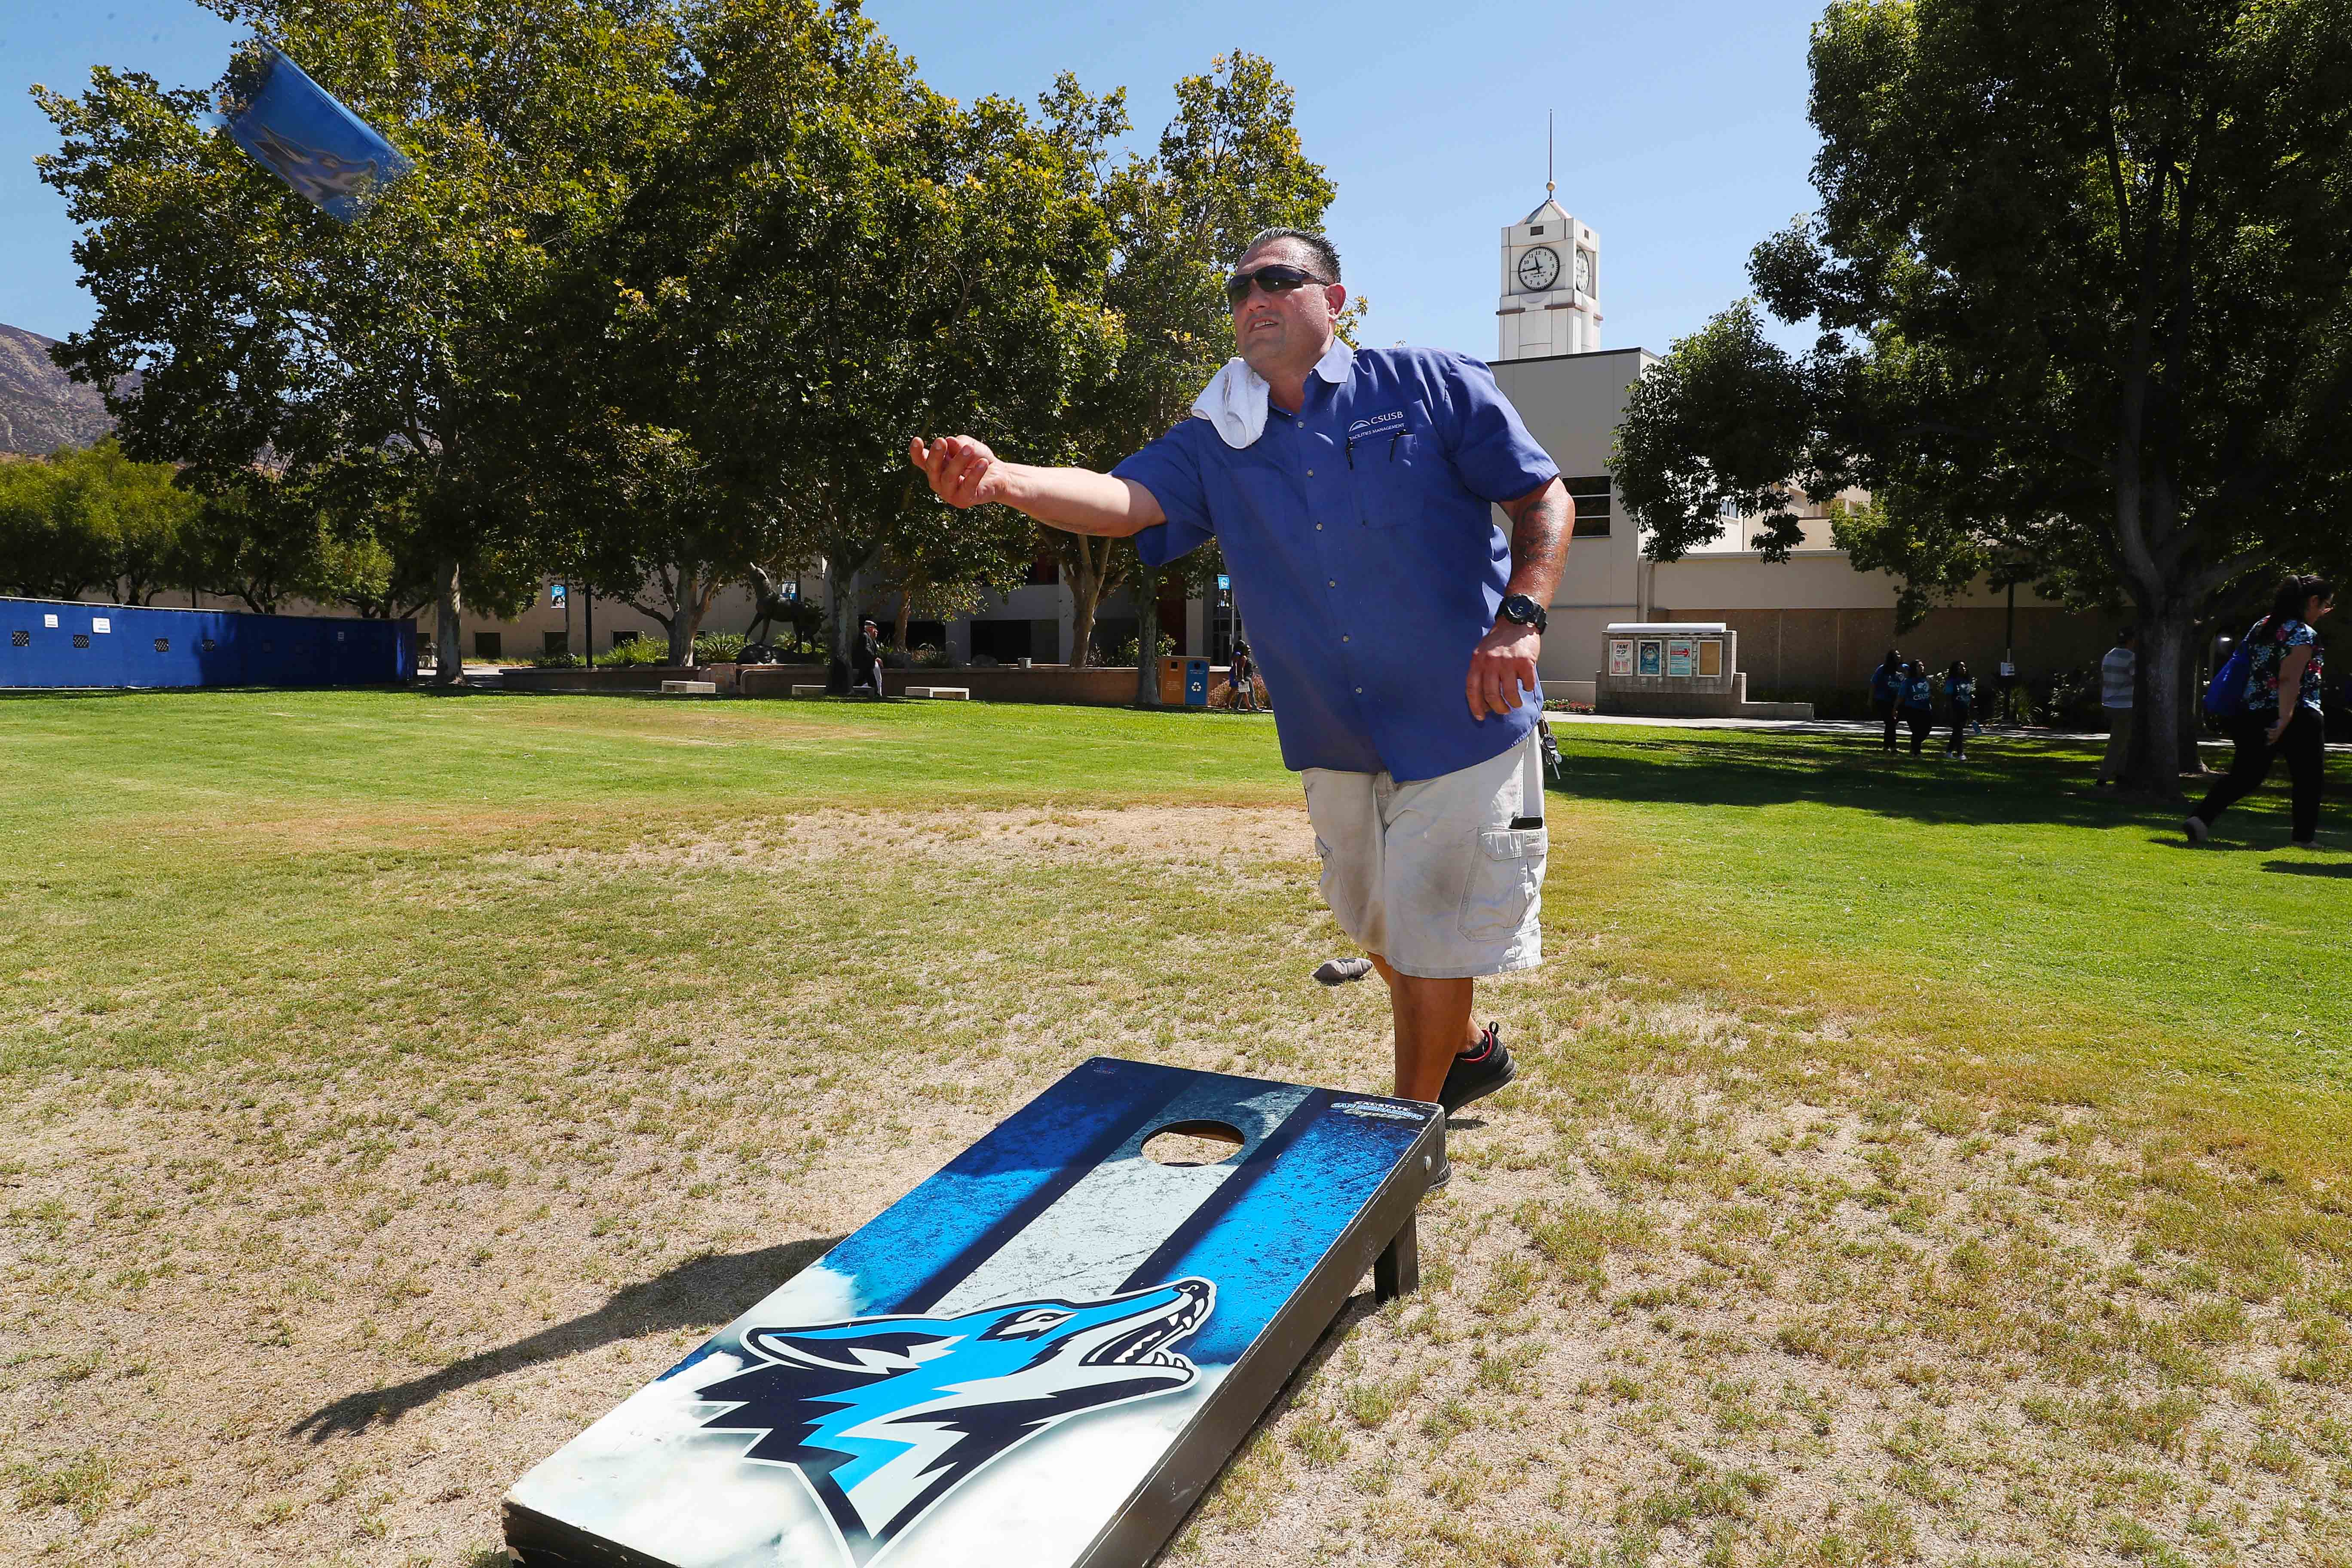 Cal State San Bernardino faculty and staff were treated to lunch, music, games and prizes